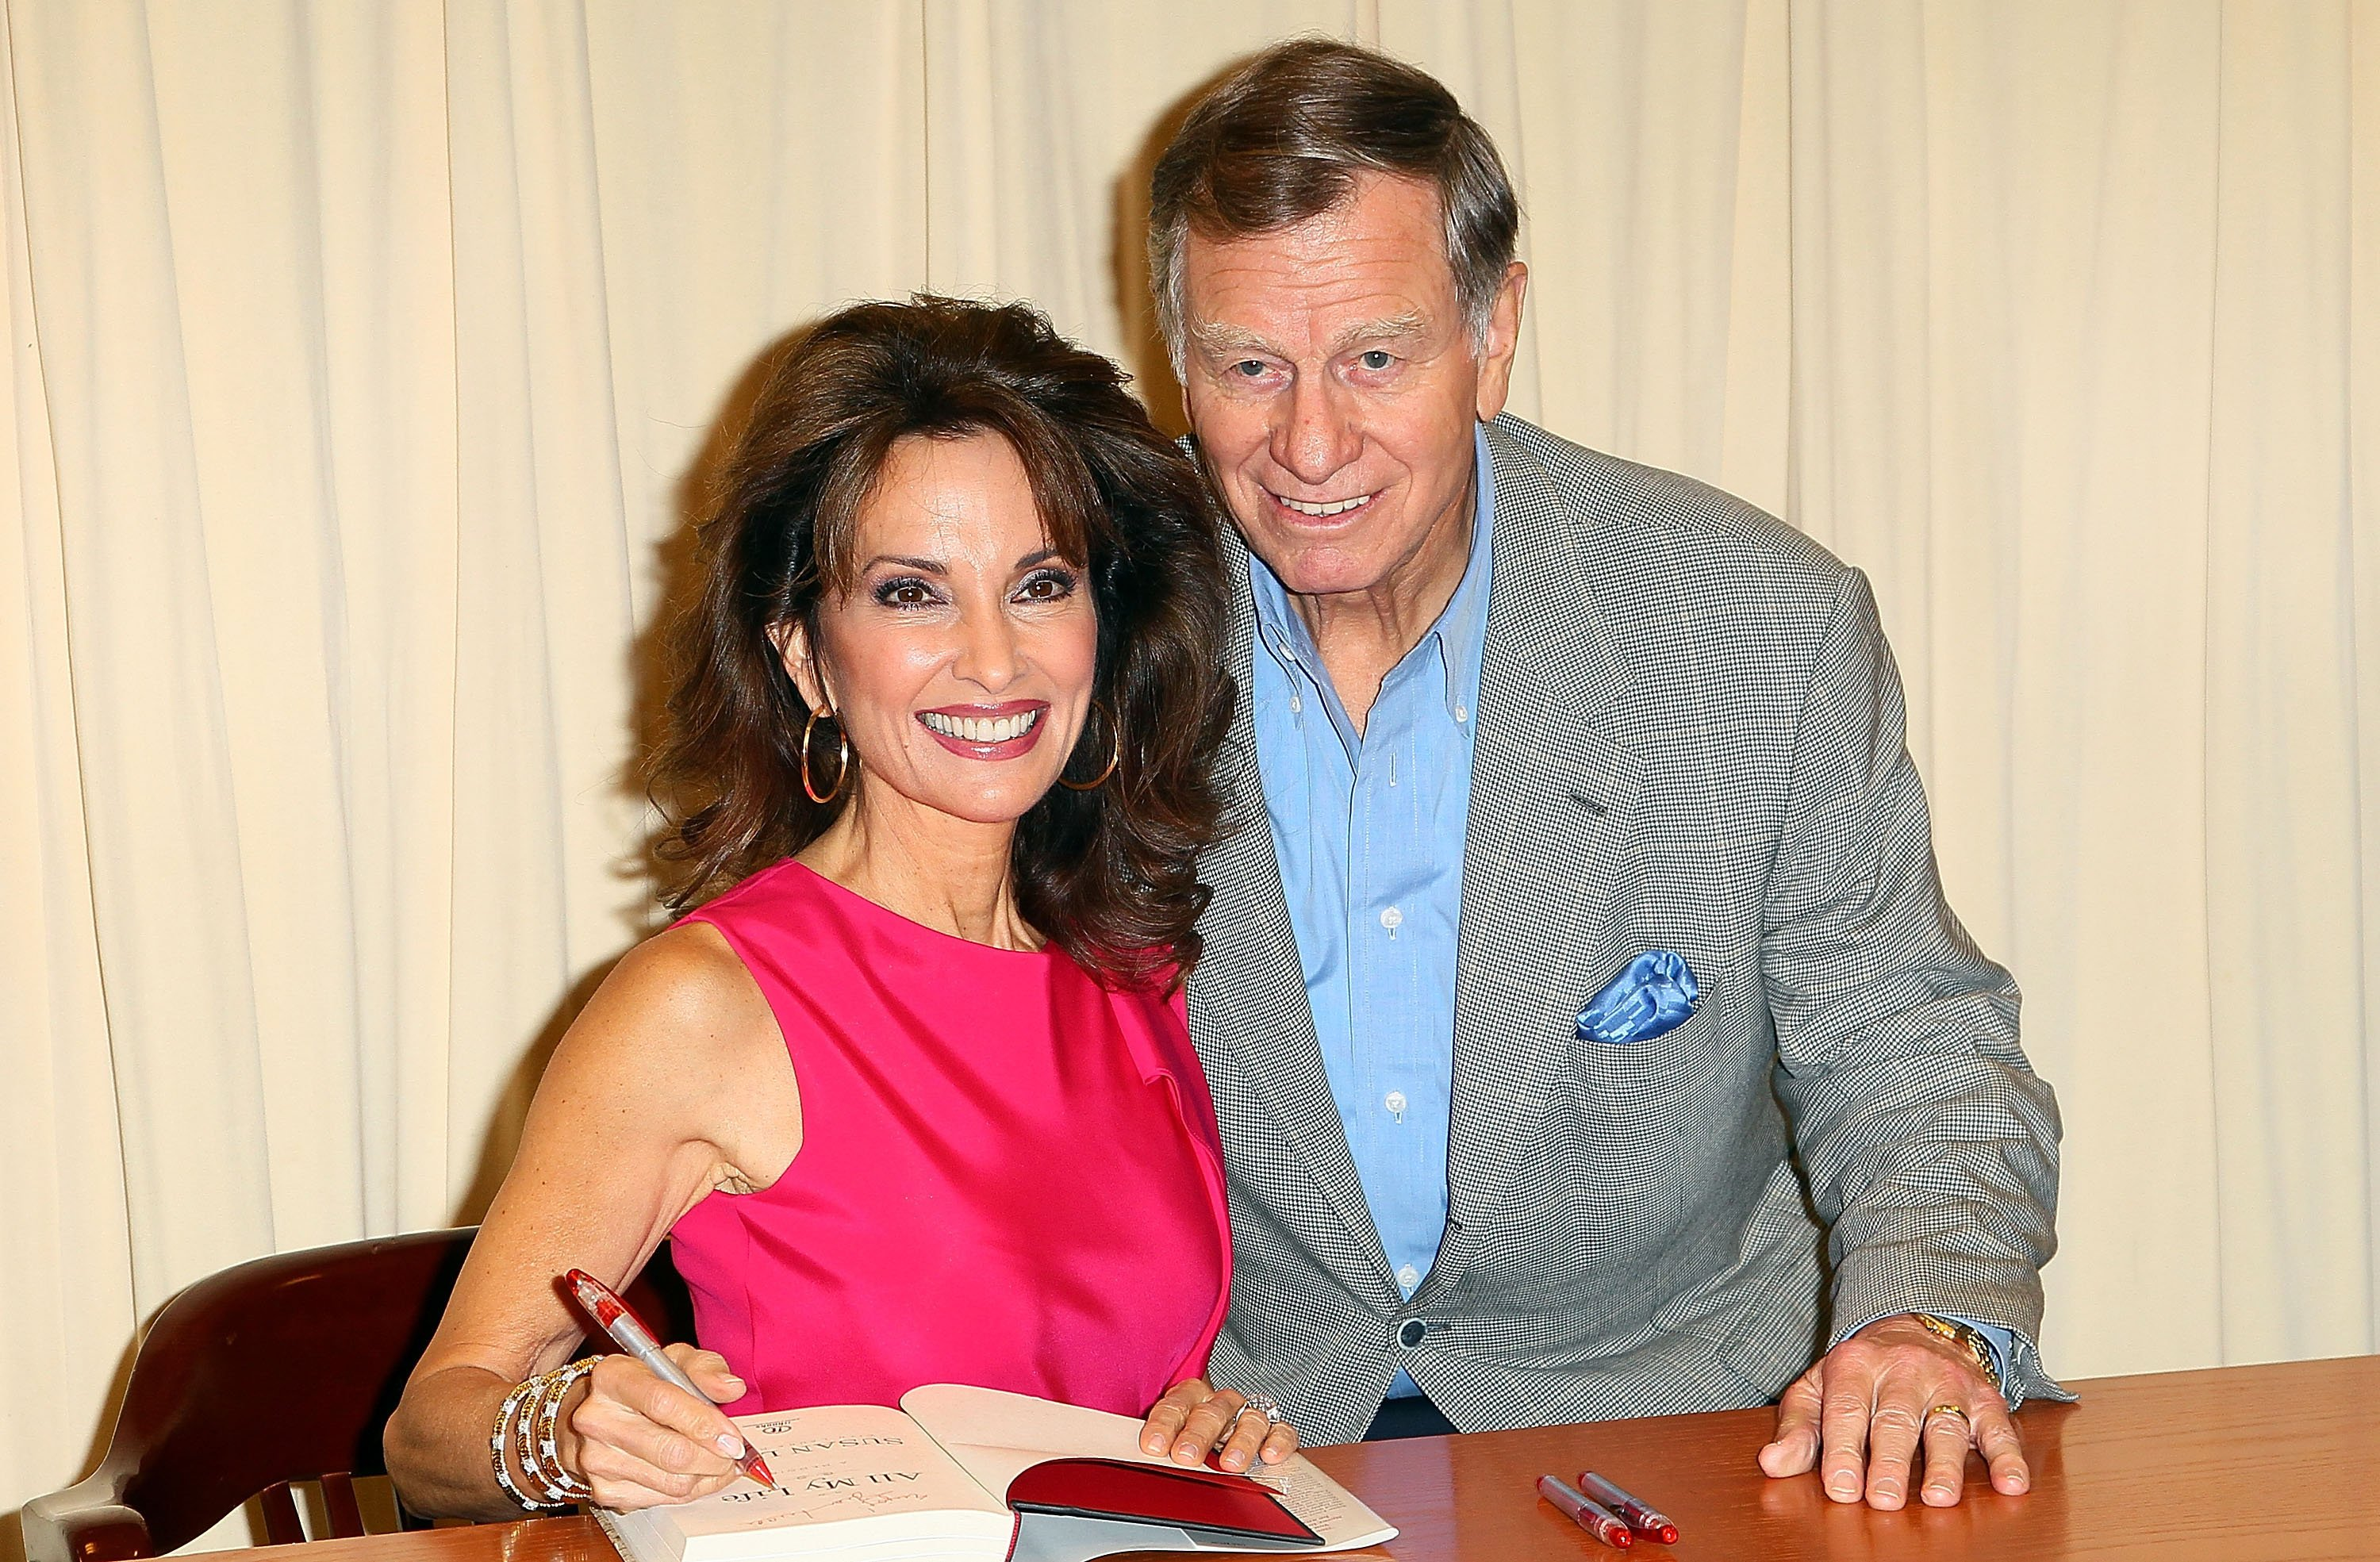 Susan Lucci and husband Helmut Huber during a 2011 book-signing event in New York. | Photo: Getty Images